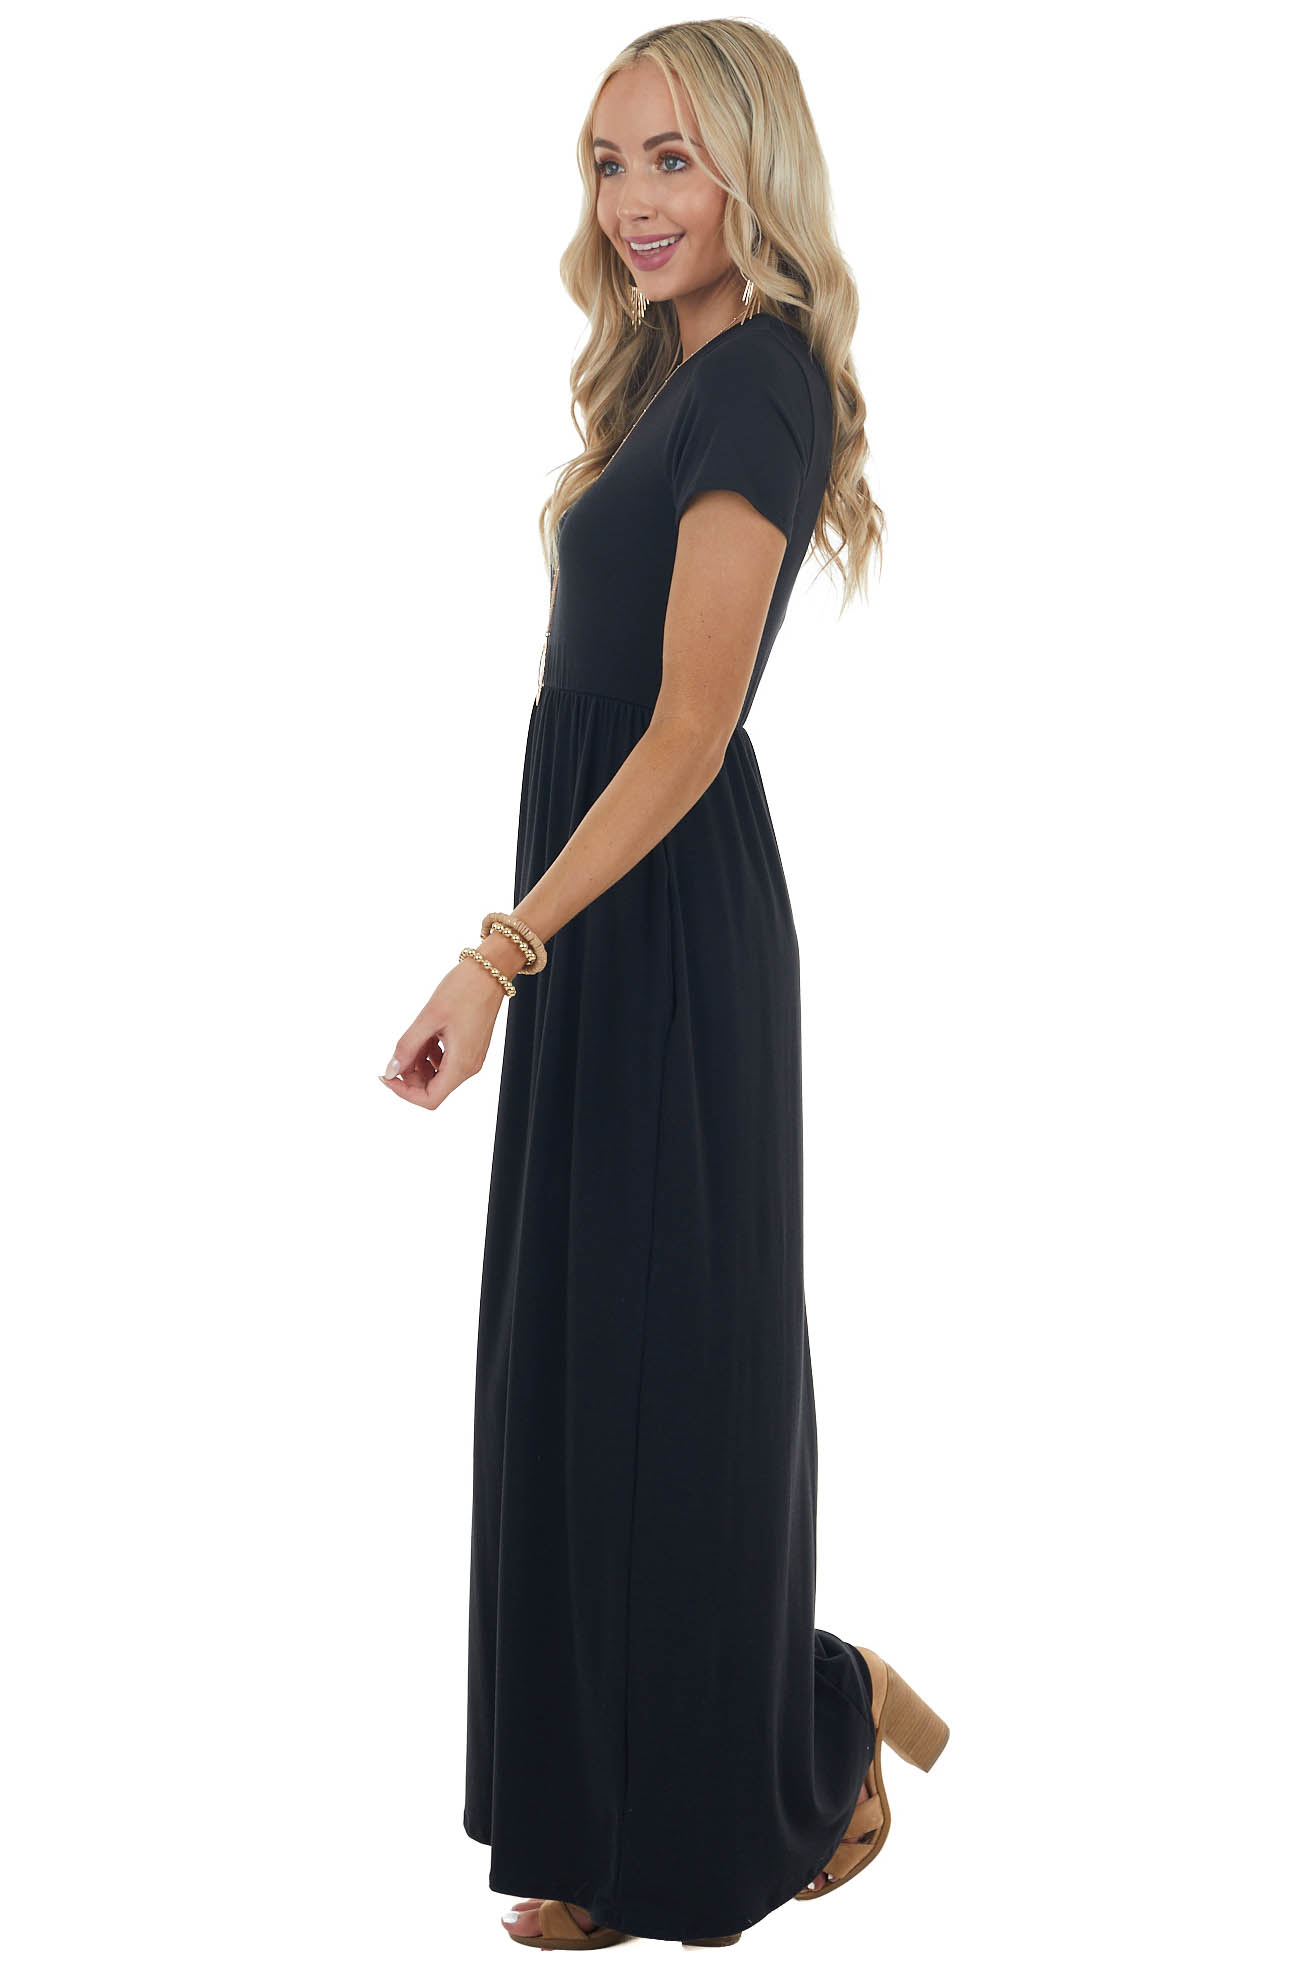 Black Flowy Short Sleeve Knit Maxi Dress with Side Pockets